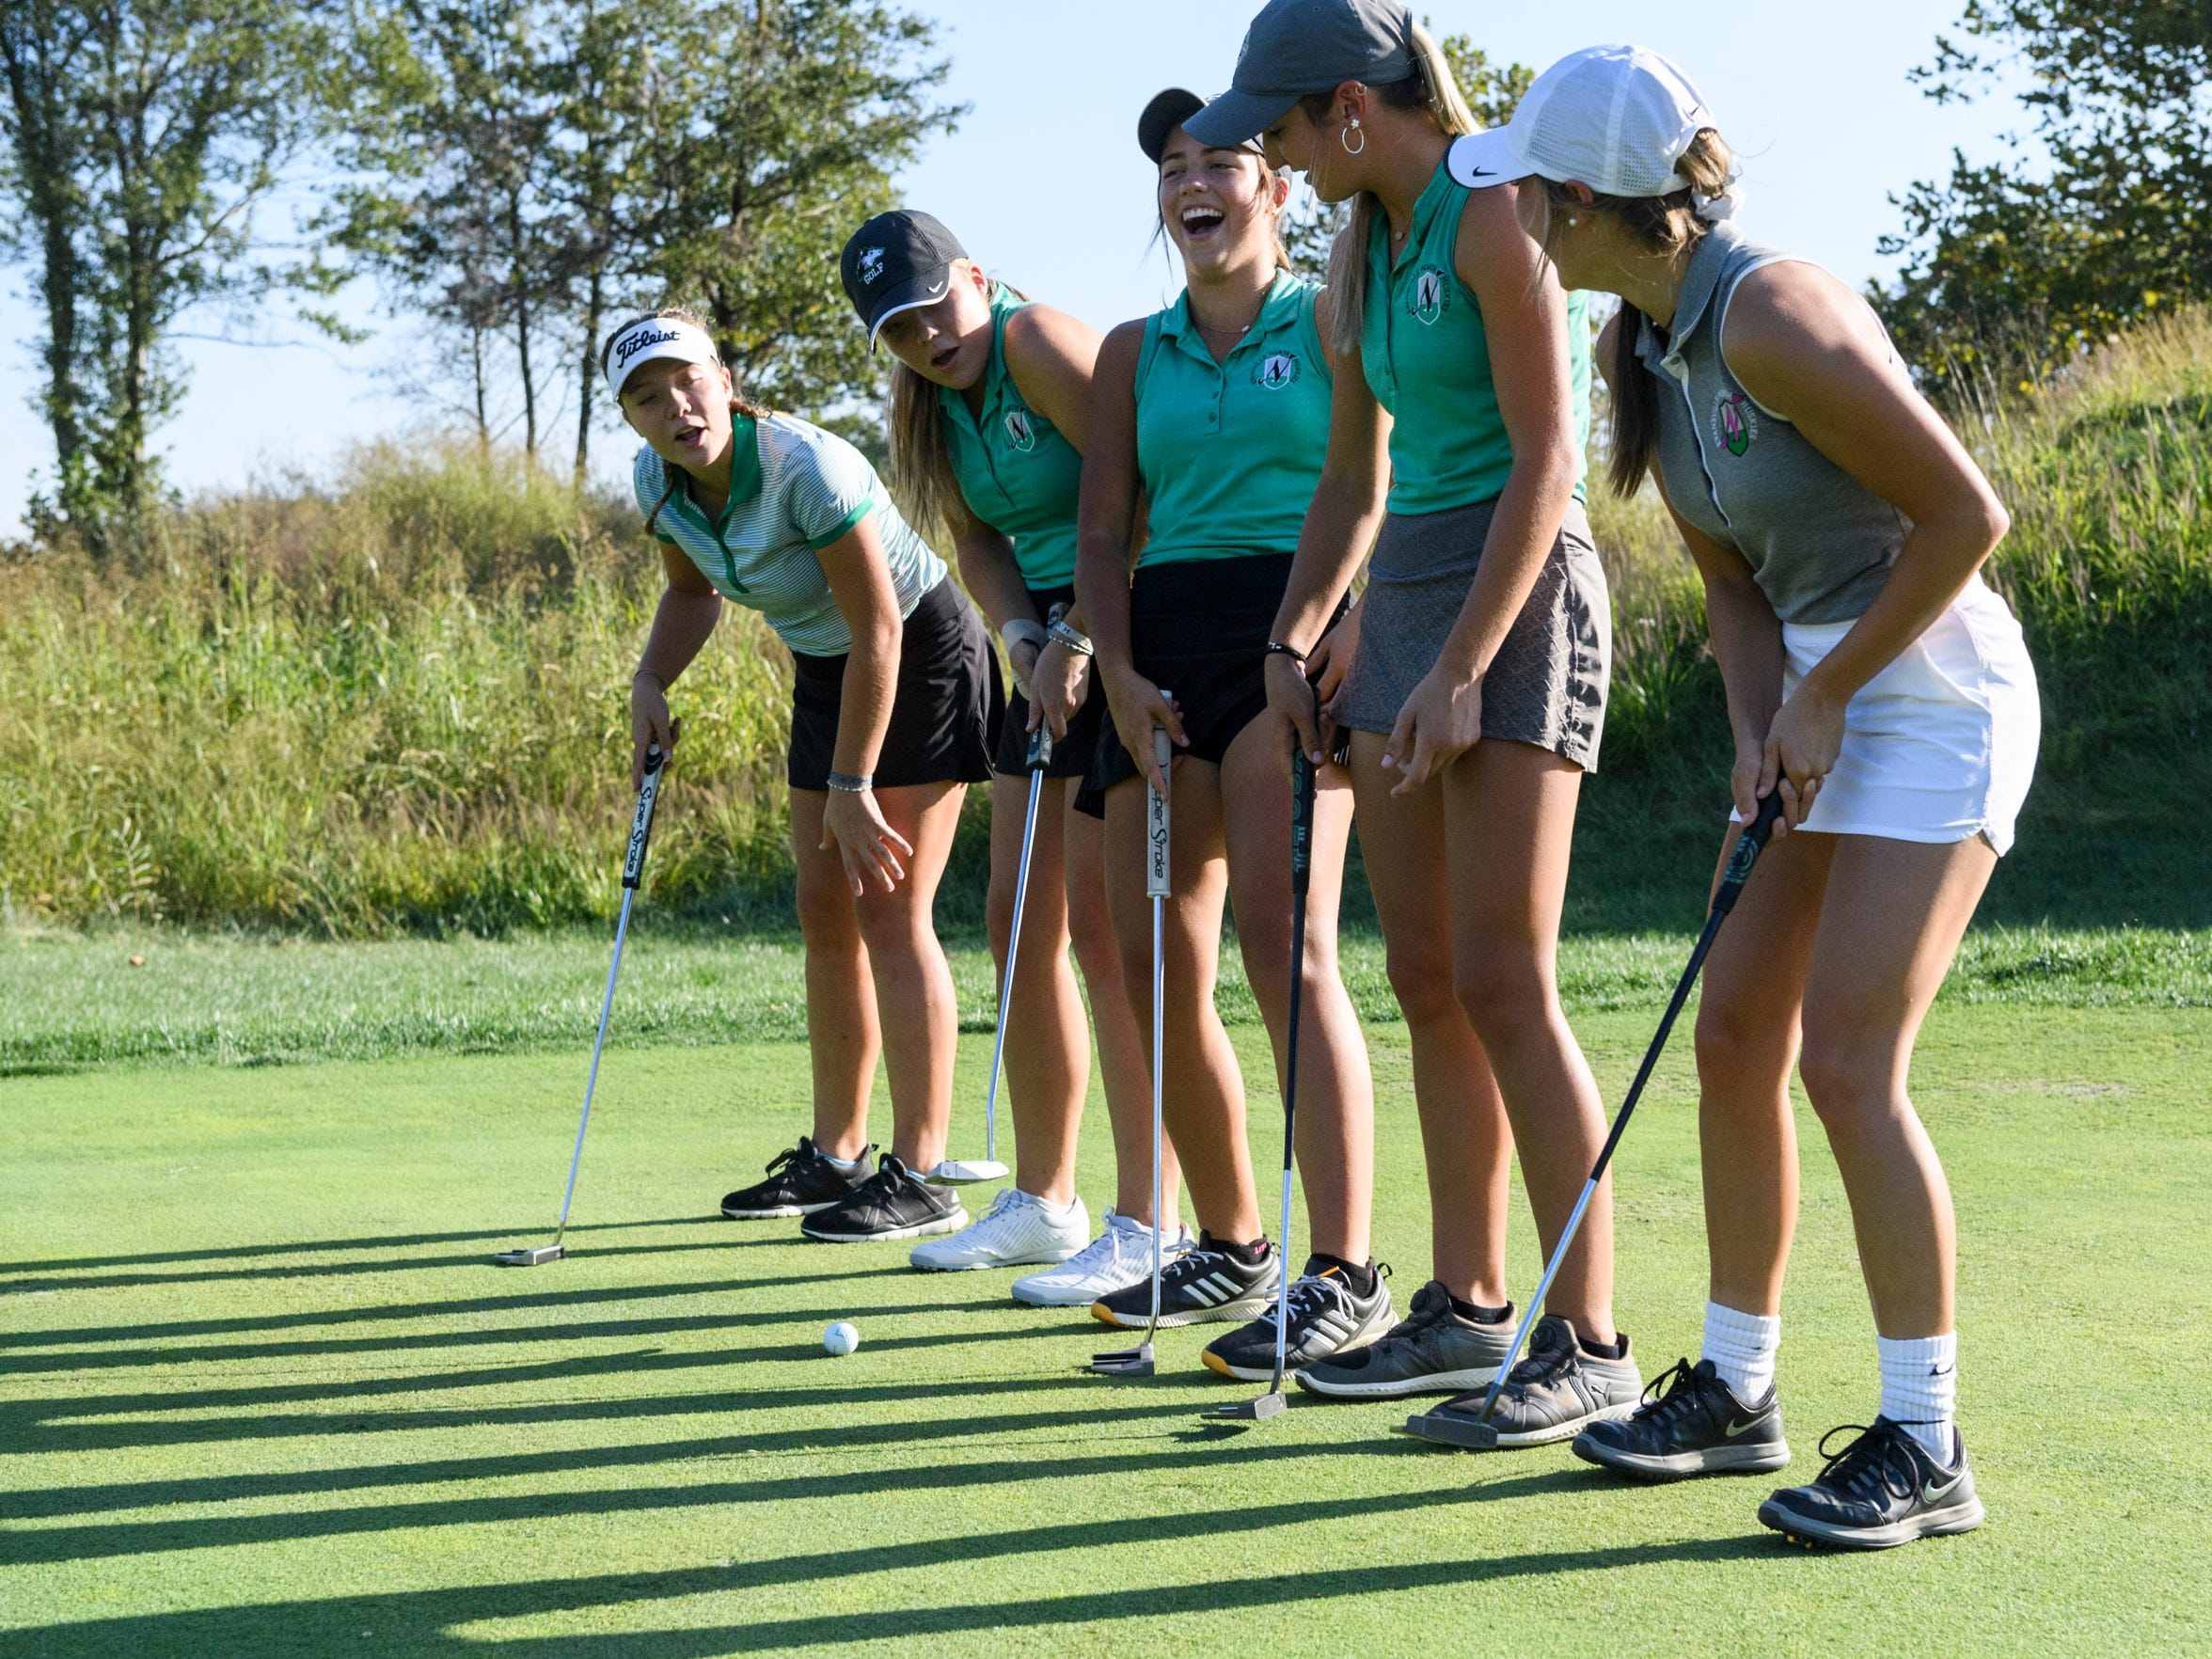 North's Faith Johnson, from back left to front right, Chloe Johnson, Reagan Sohn, Abby Whittington and Destynie Sheridan laugh as a fun drill they try doesn't go as planned during practice at Victoria National Golf Club in Newburgh, Ind., Wednesday afternoon, Oct. 2, 2019.